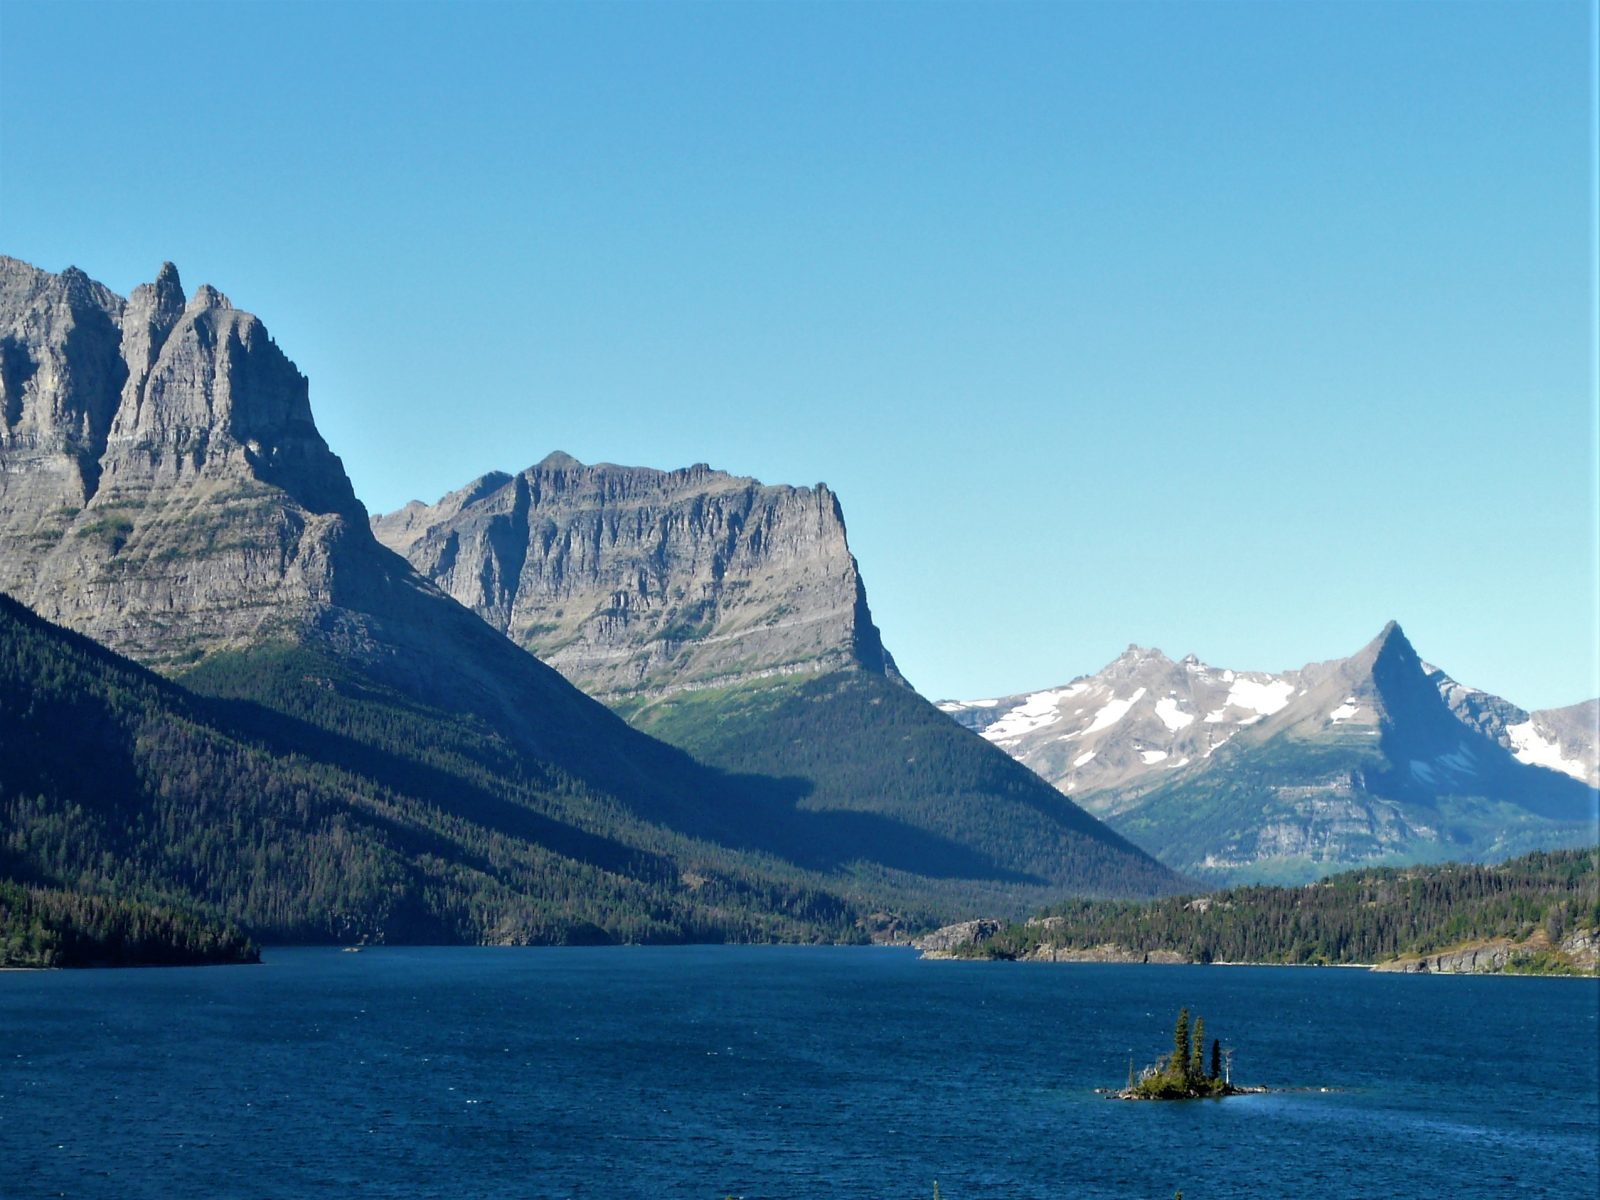 Mountains near Saint Mary Lake